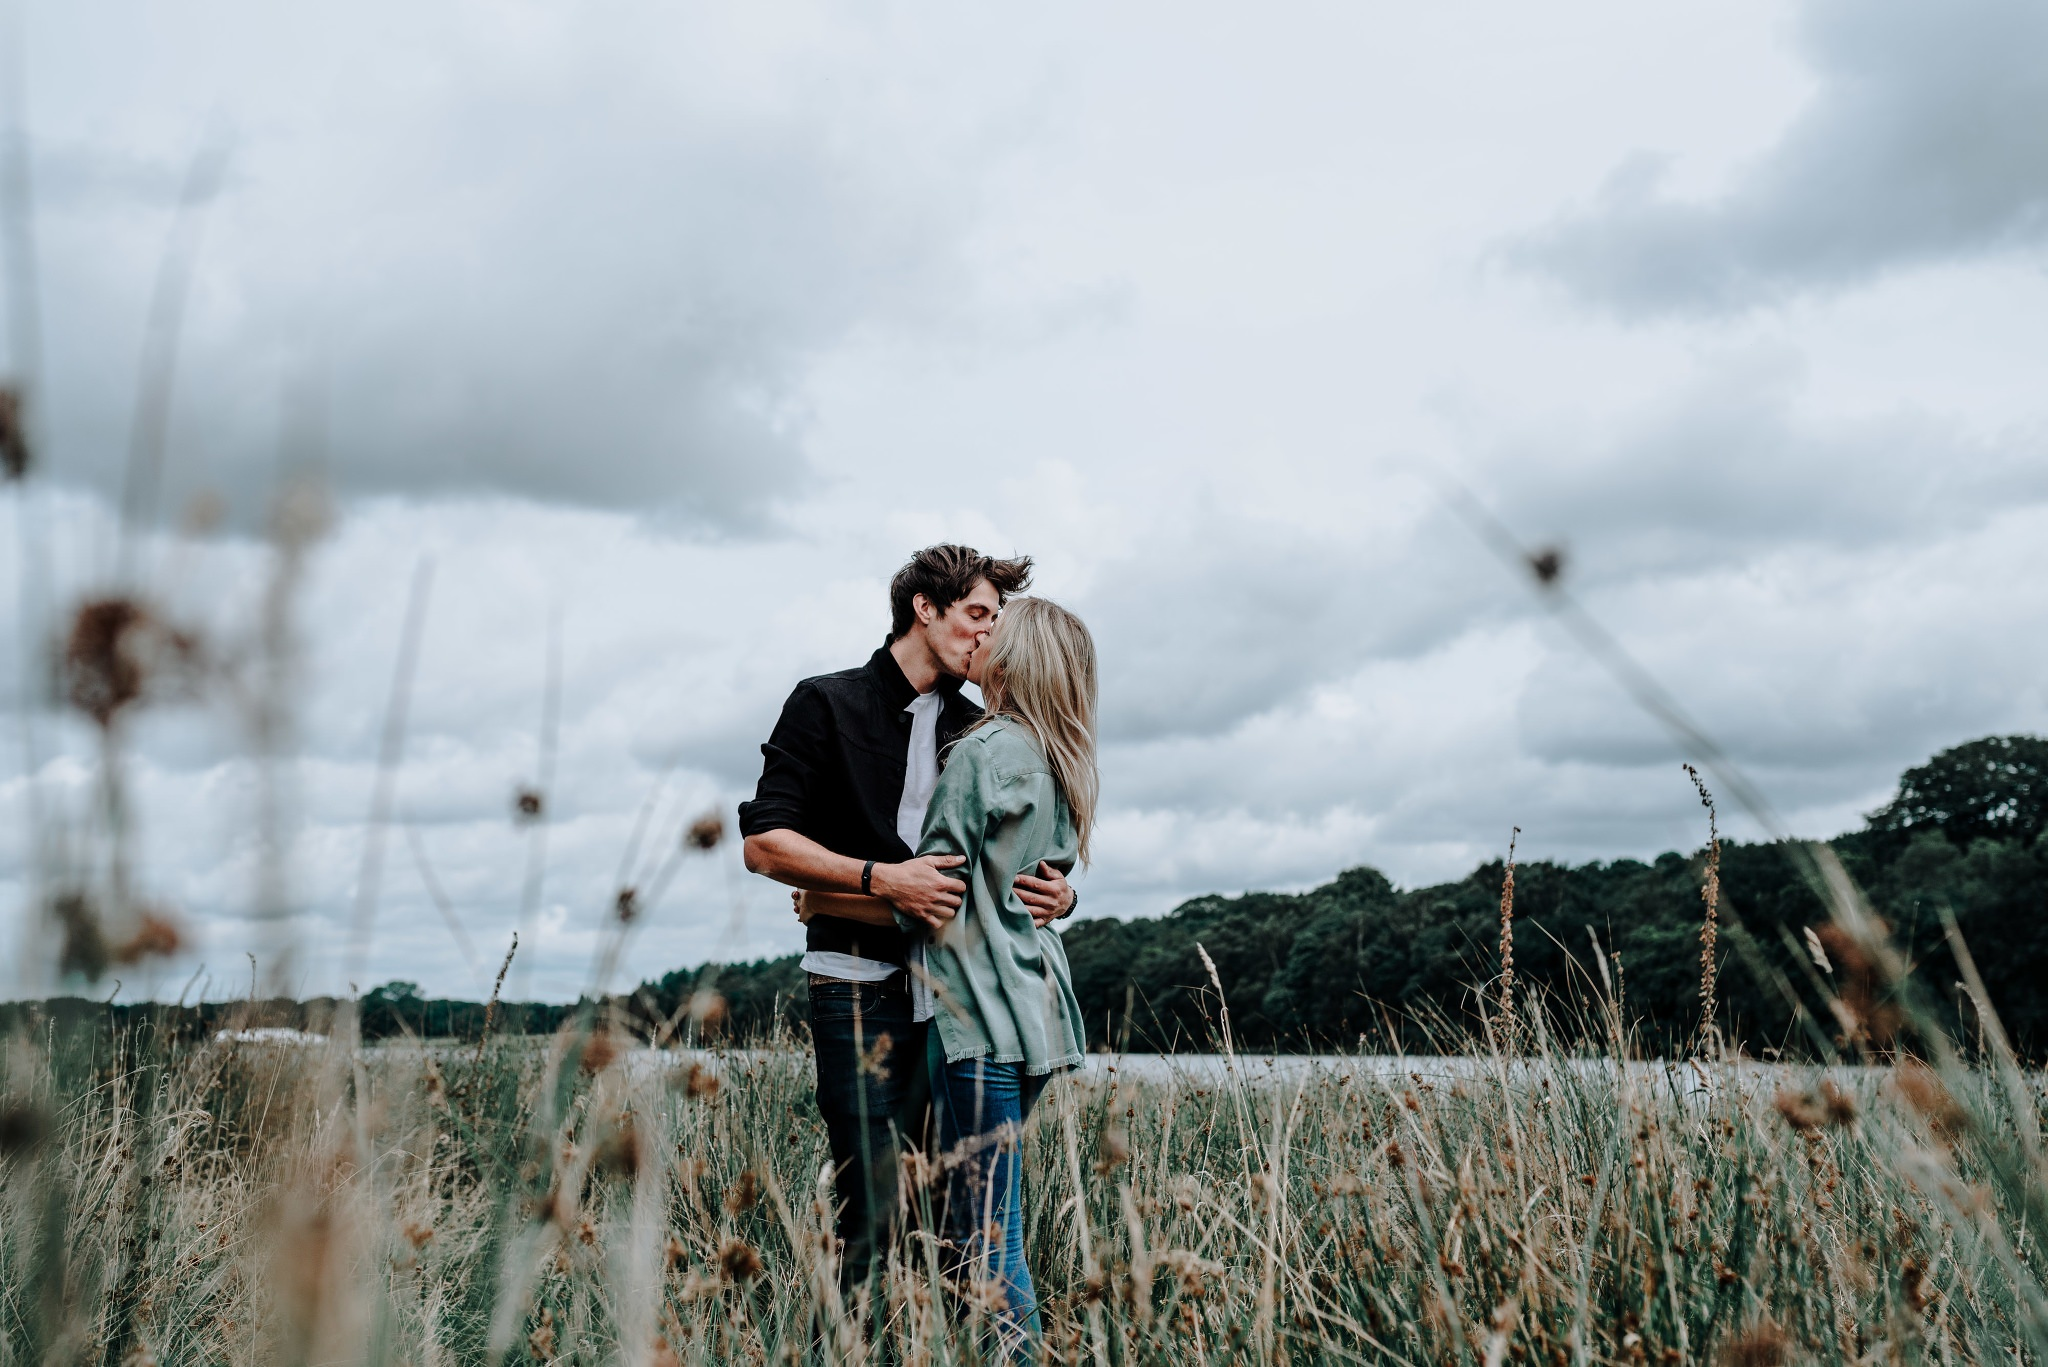 Lauren & Christopher kissing ion front of the lake at Tatton Park, Cheshire